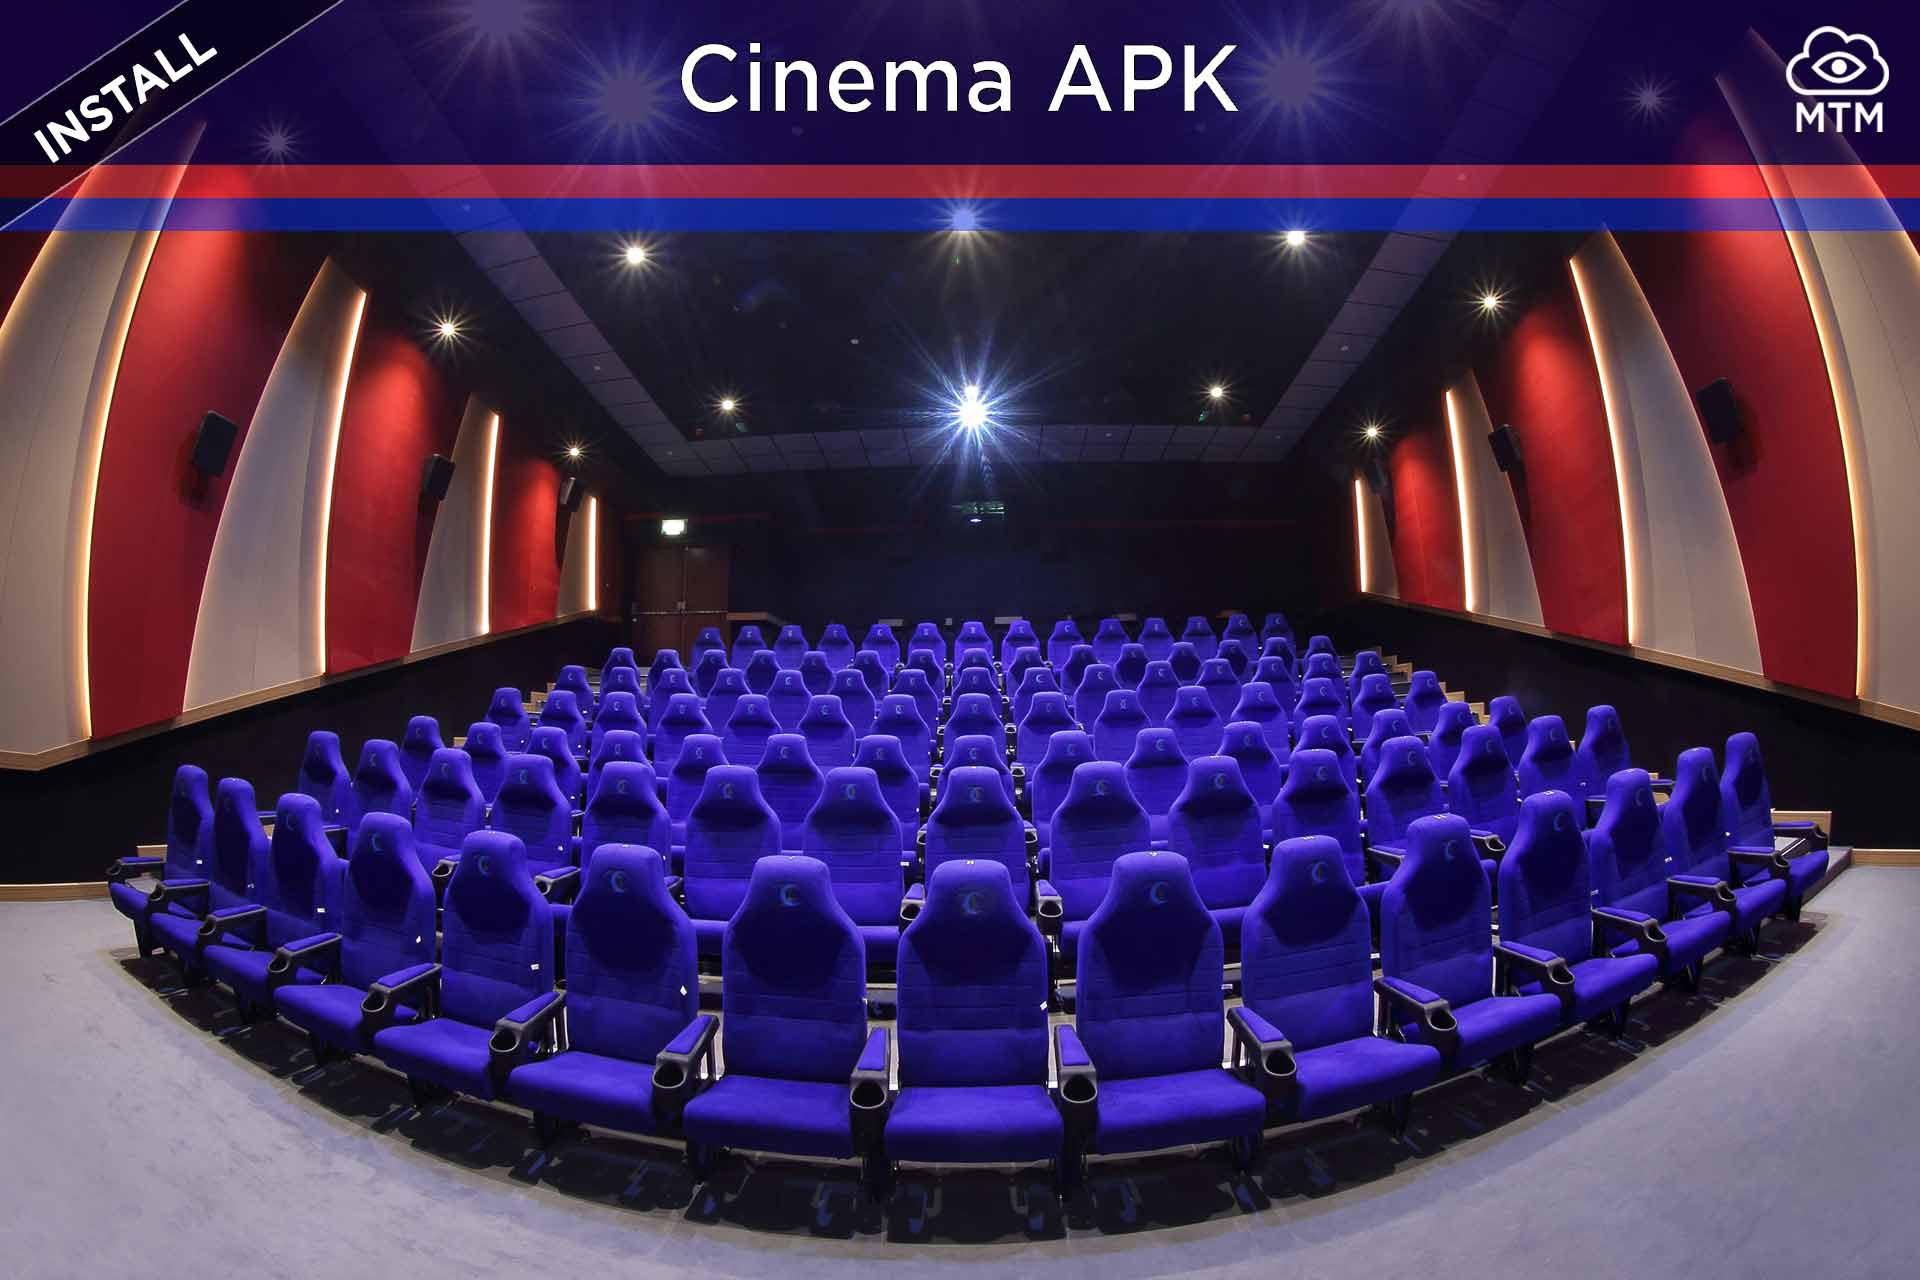 cinema apk no ads firestick